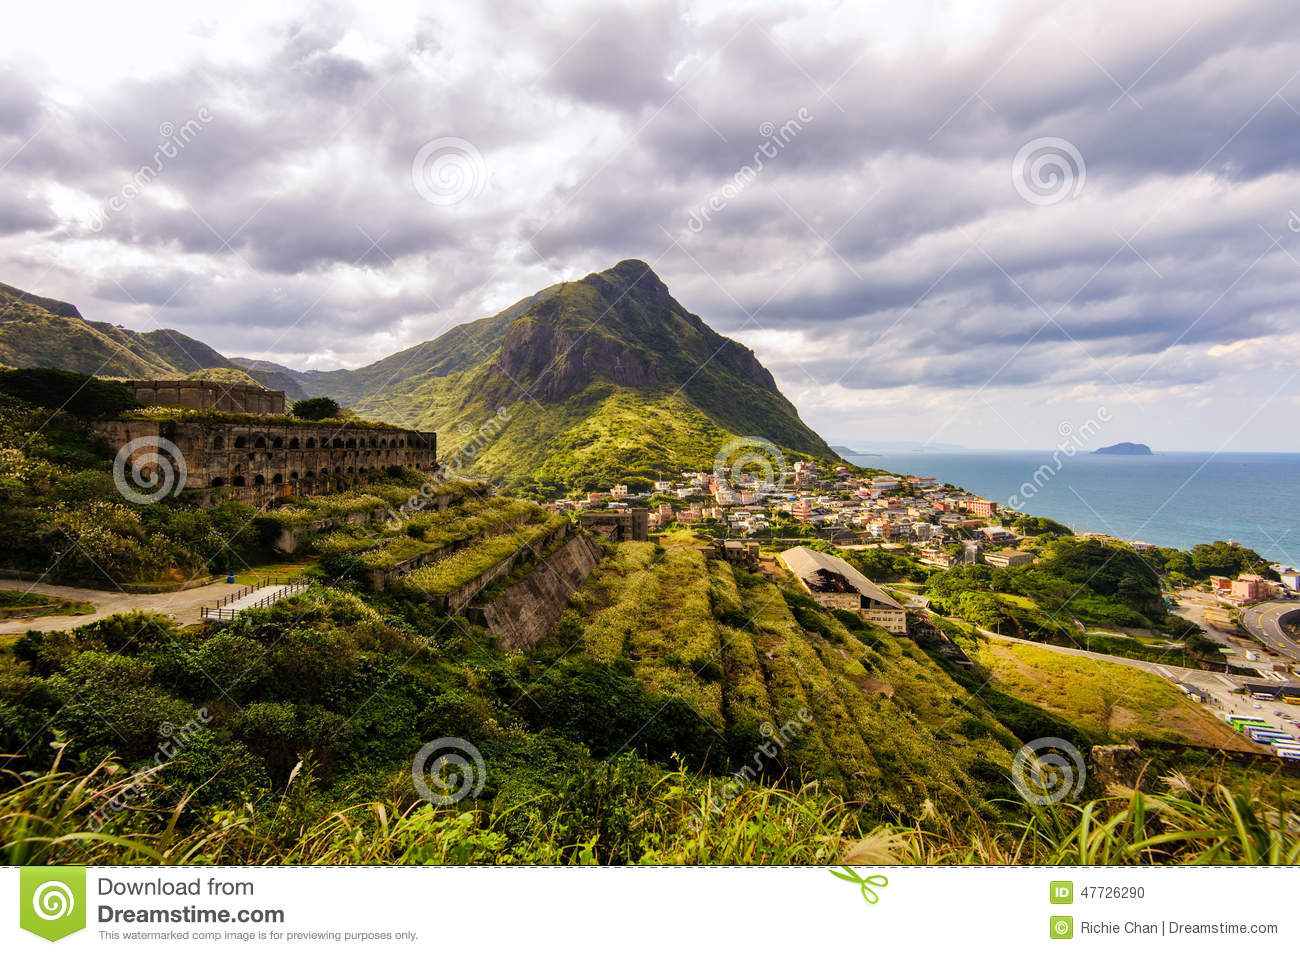 Landscape of mountains with ruins